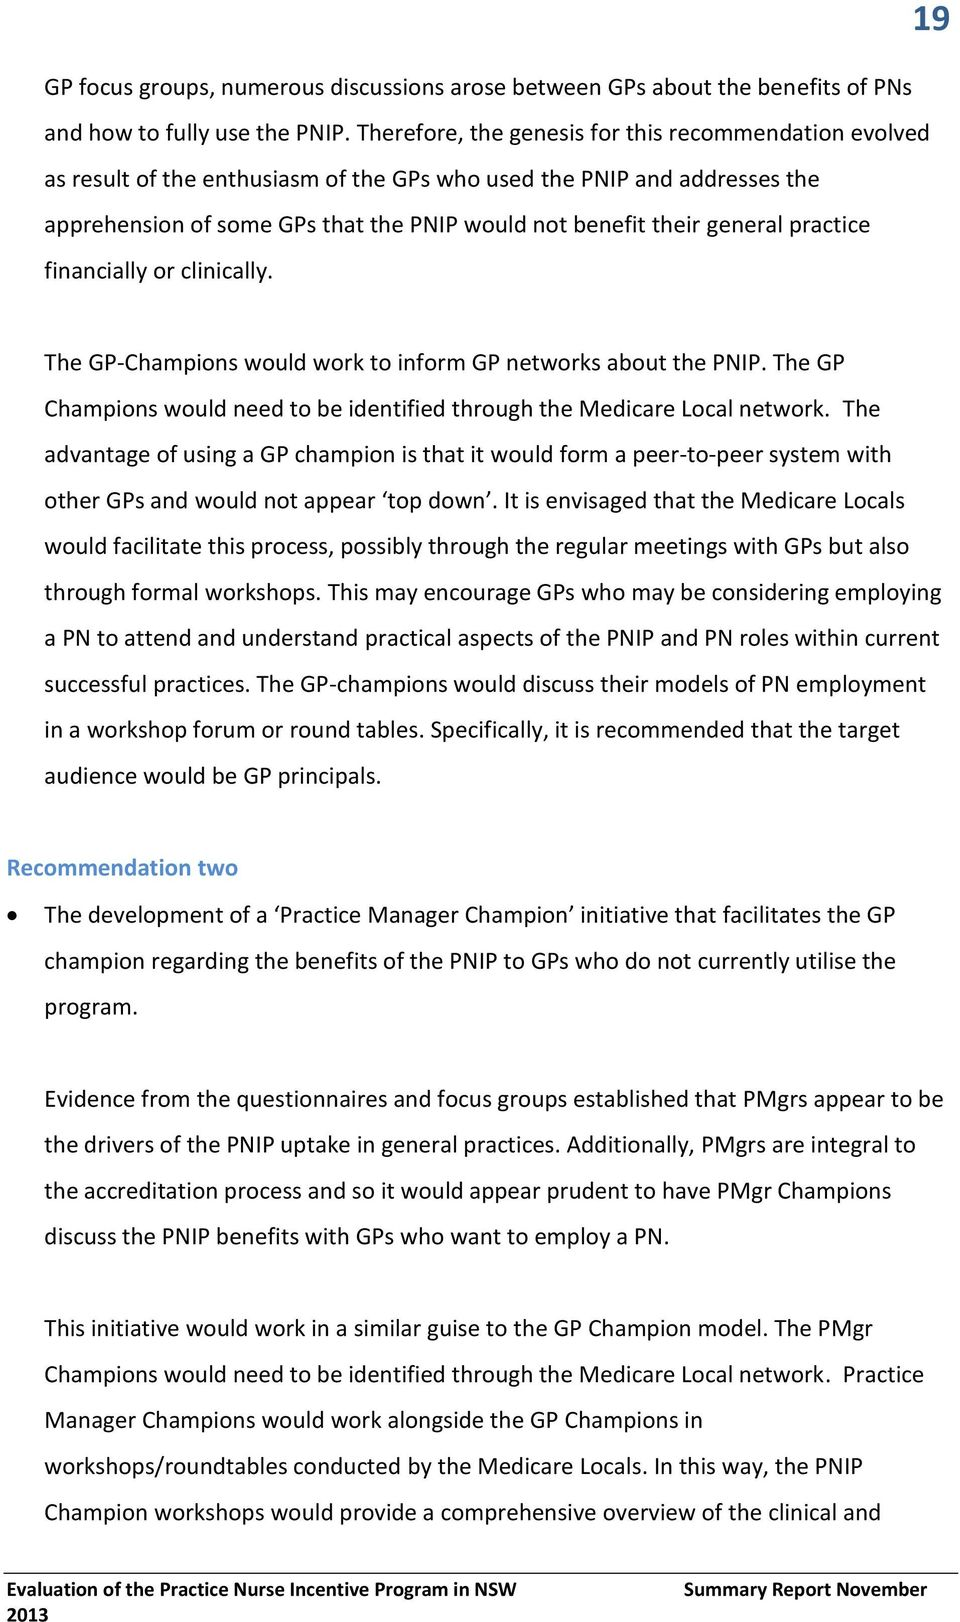 general practice financially or clinically. 19 The GP-Champions would work to inform GP networks about the PNIP. The GP Champions would need to be identified through the Medicare Local network.